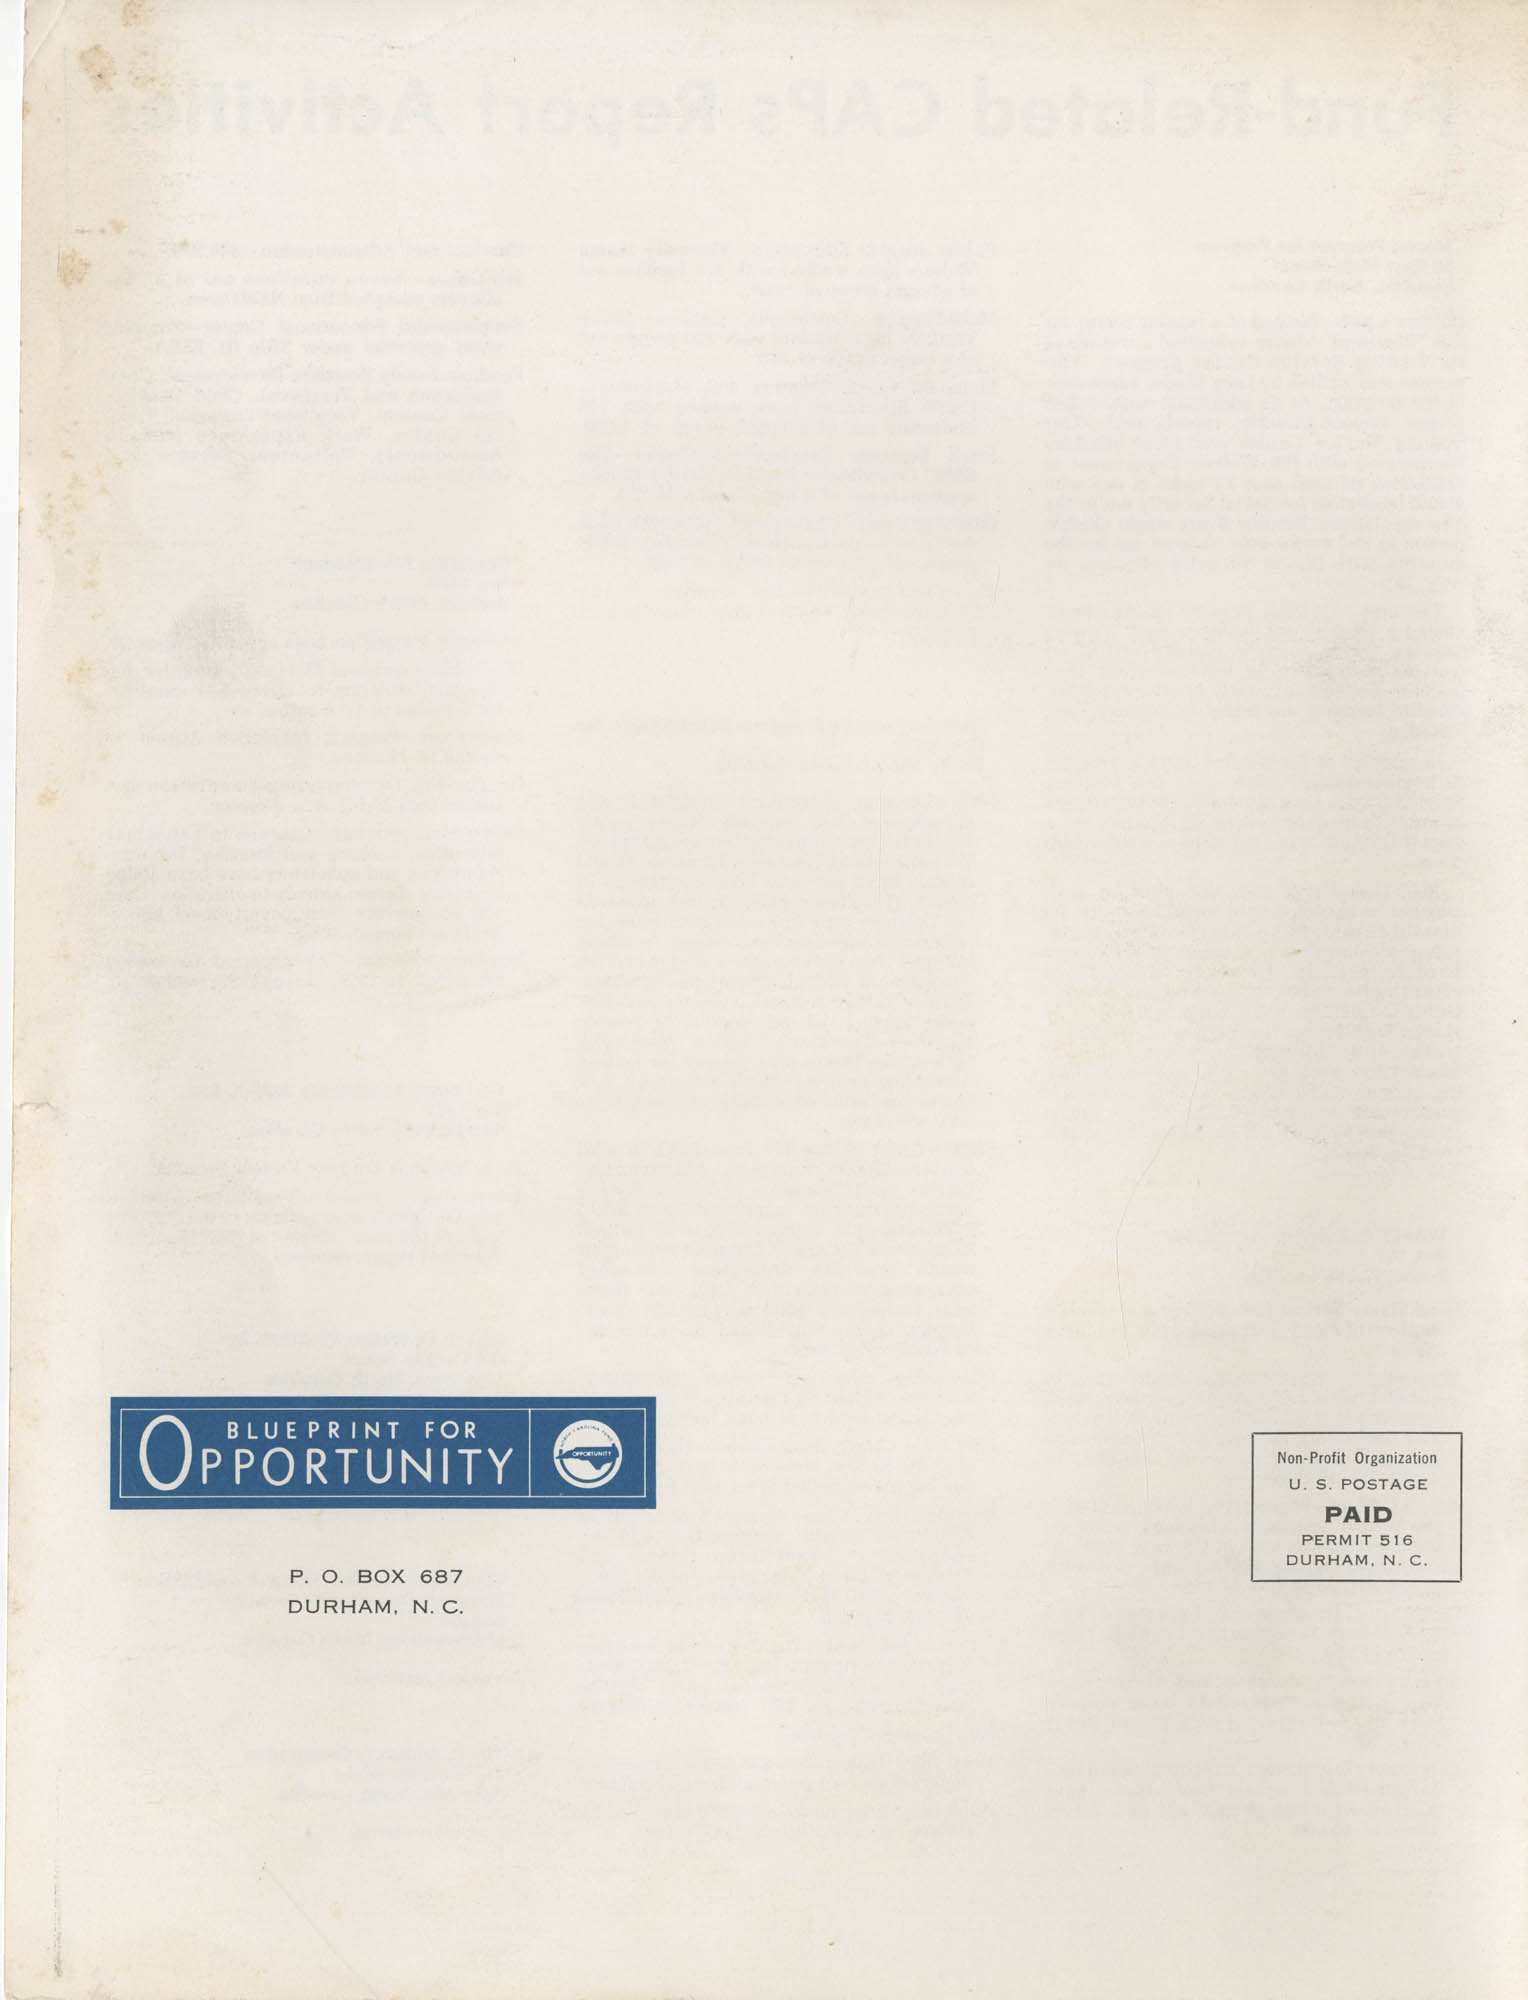 Blueprint for Opportunity, Vol. 2, No. 4, Back Cover